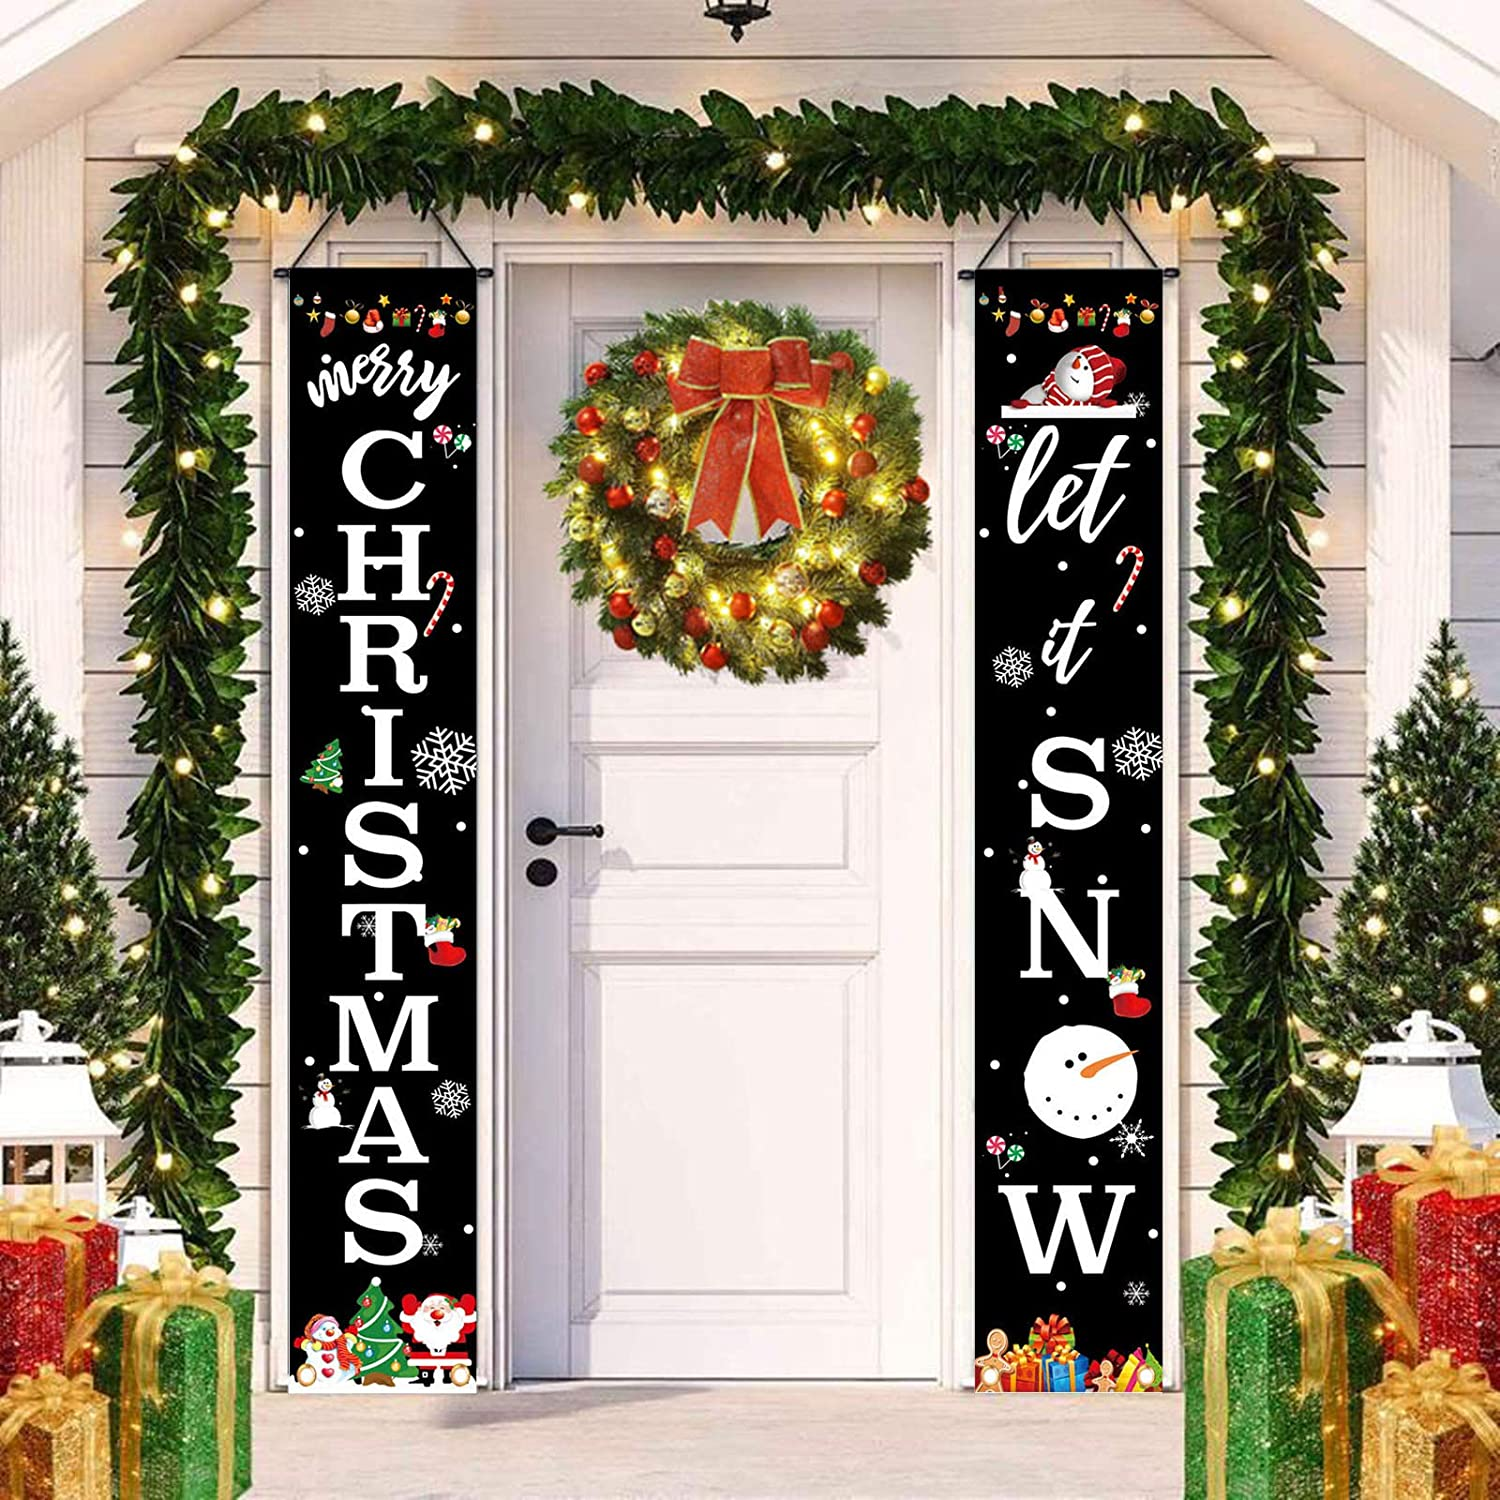 Pecsu Merry Christmas Banner for Home, Christmas Porch Sign Decorations Outdoor Indoor, Winter Holiday Wall Hanging Black Let It Snow Decor for Front Door Home Kitchen Party 12 x 72 Inch